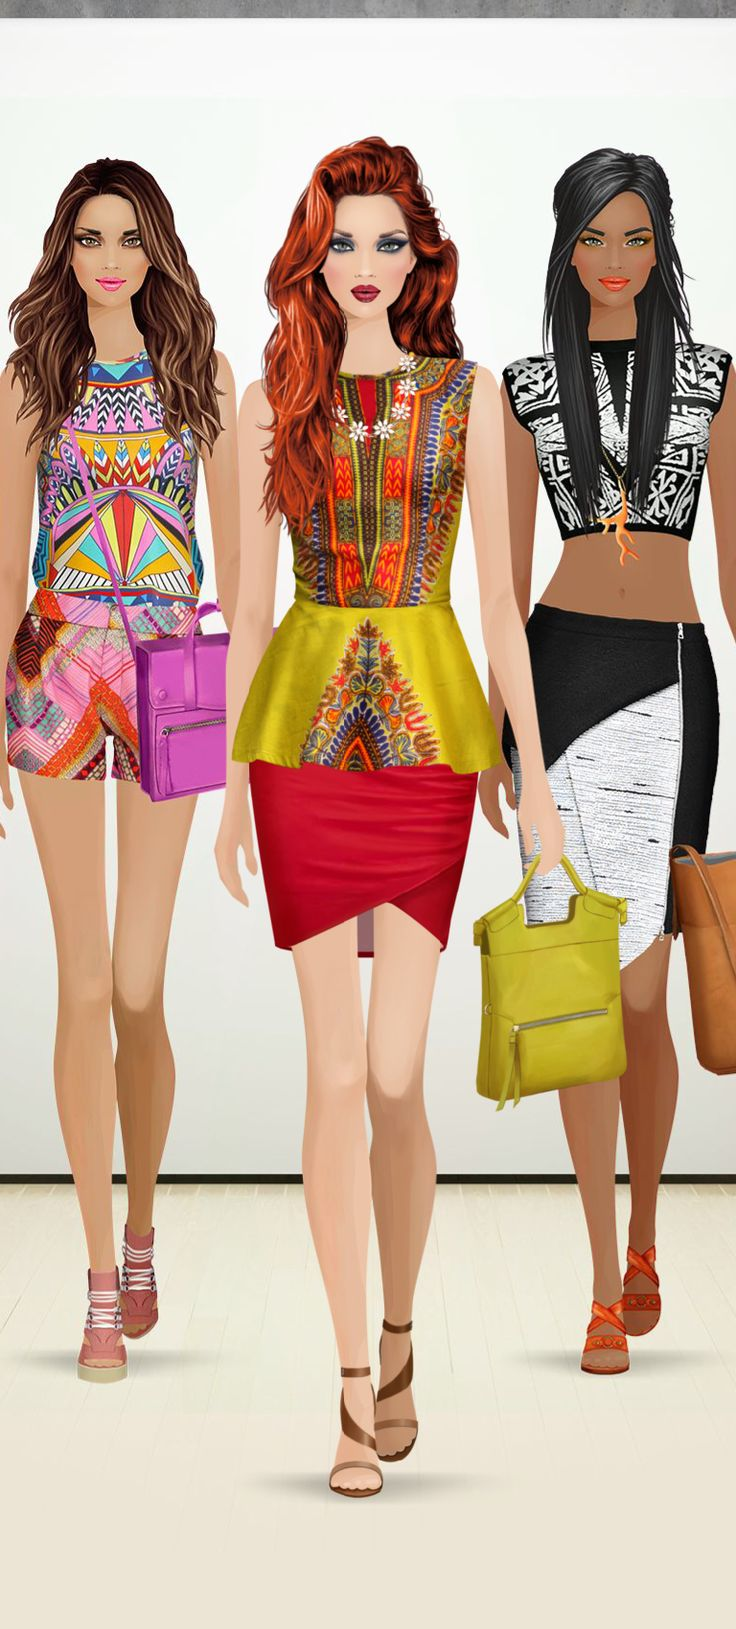 17 Best Images About Covet Fashion Game On Pinterest